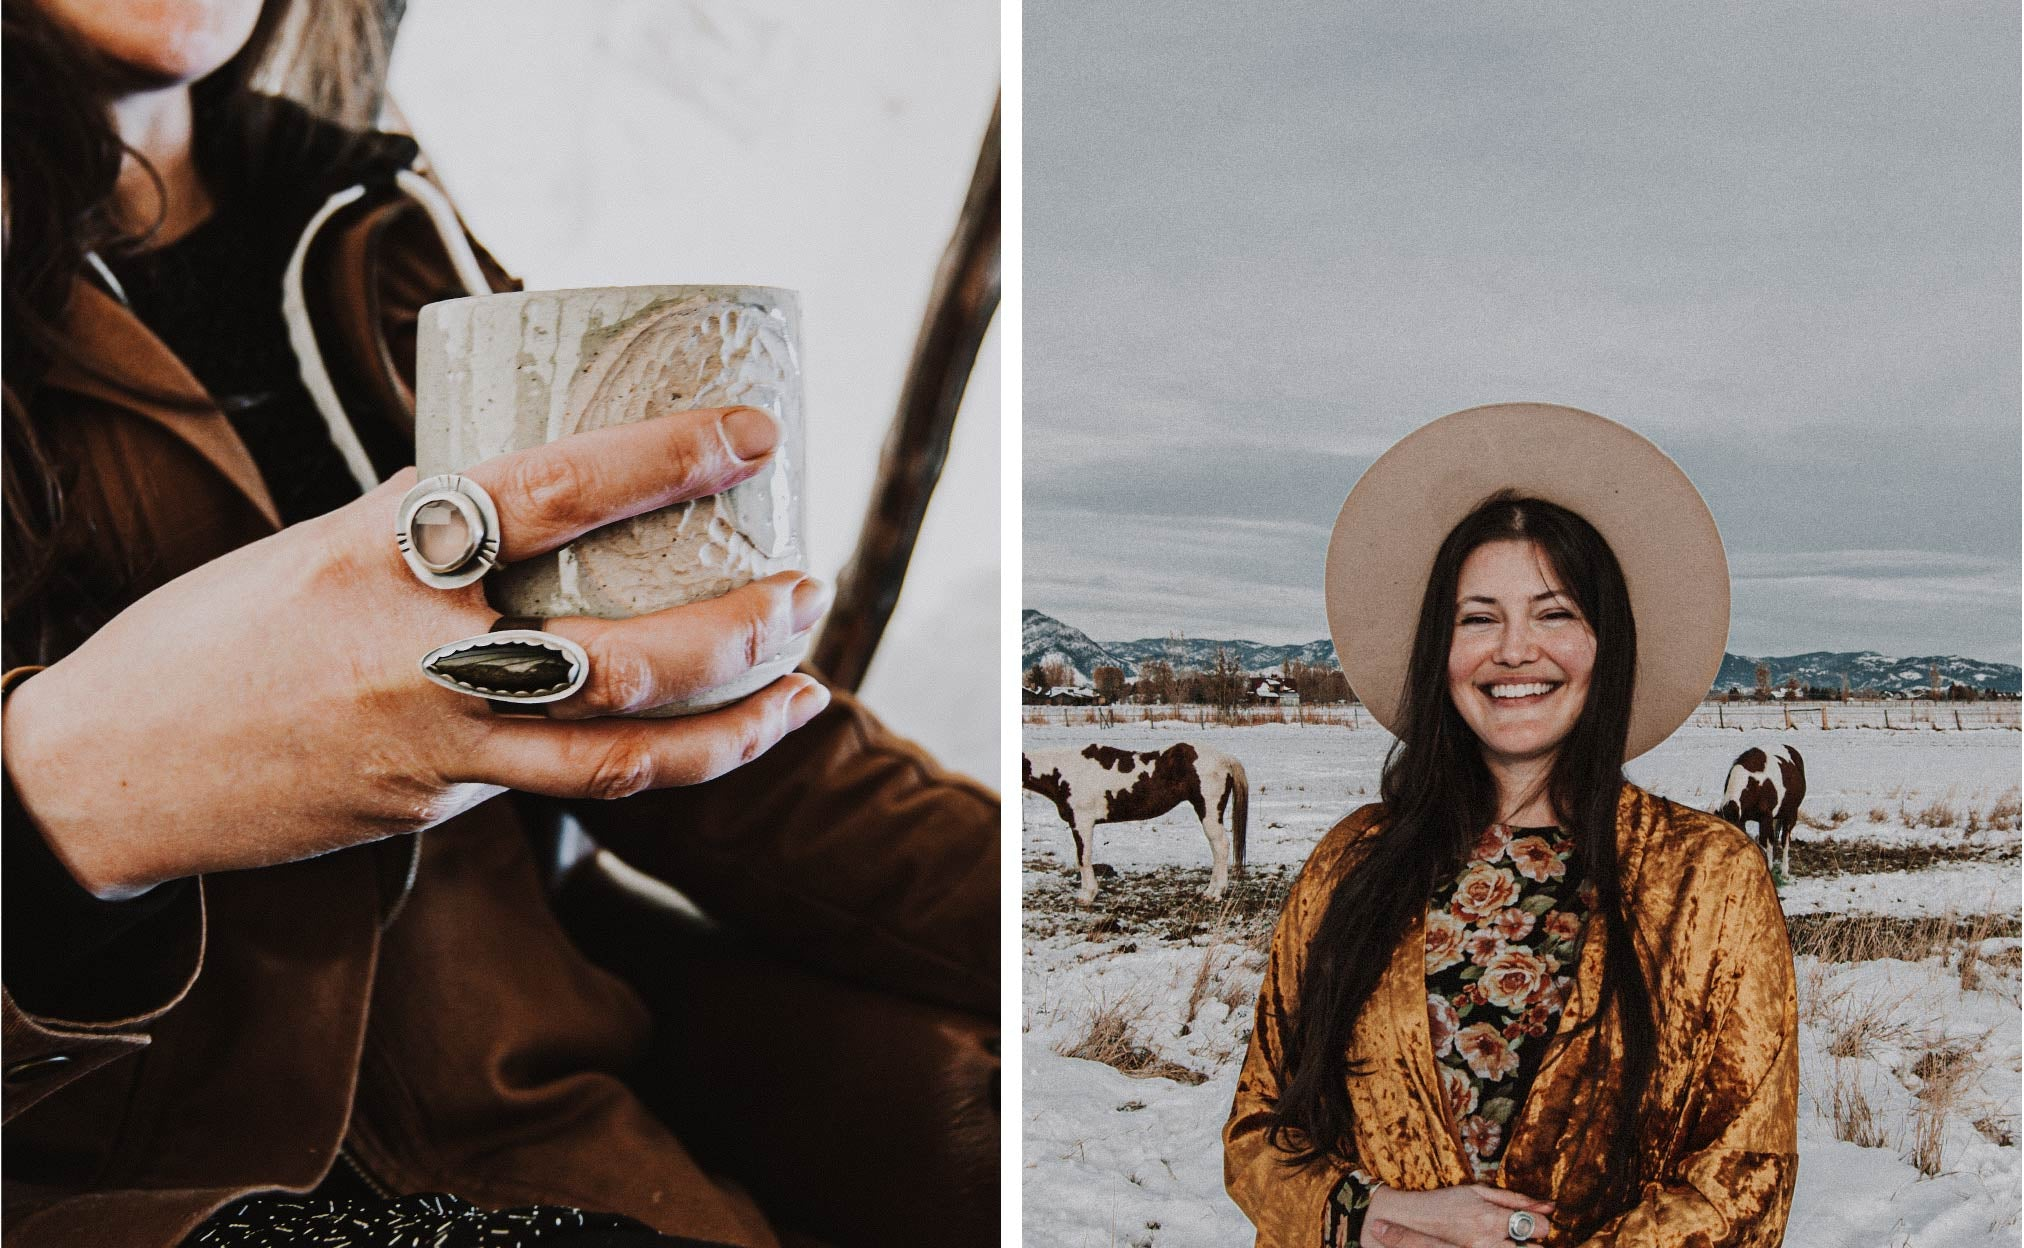 hand with rings holding a handmade mug, and woman standing in the Montana snow